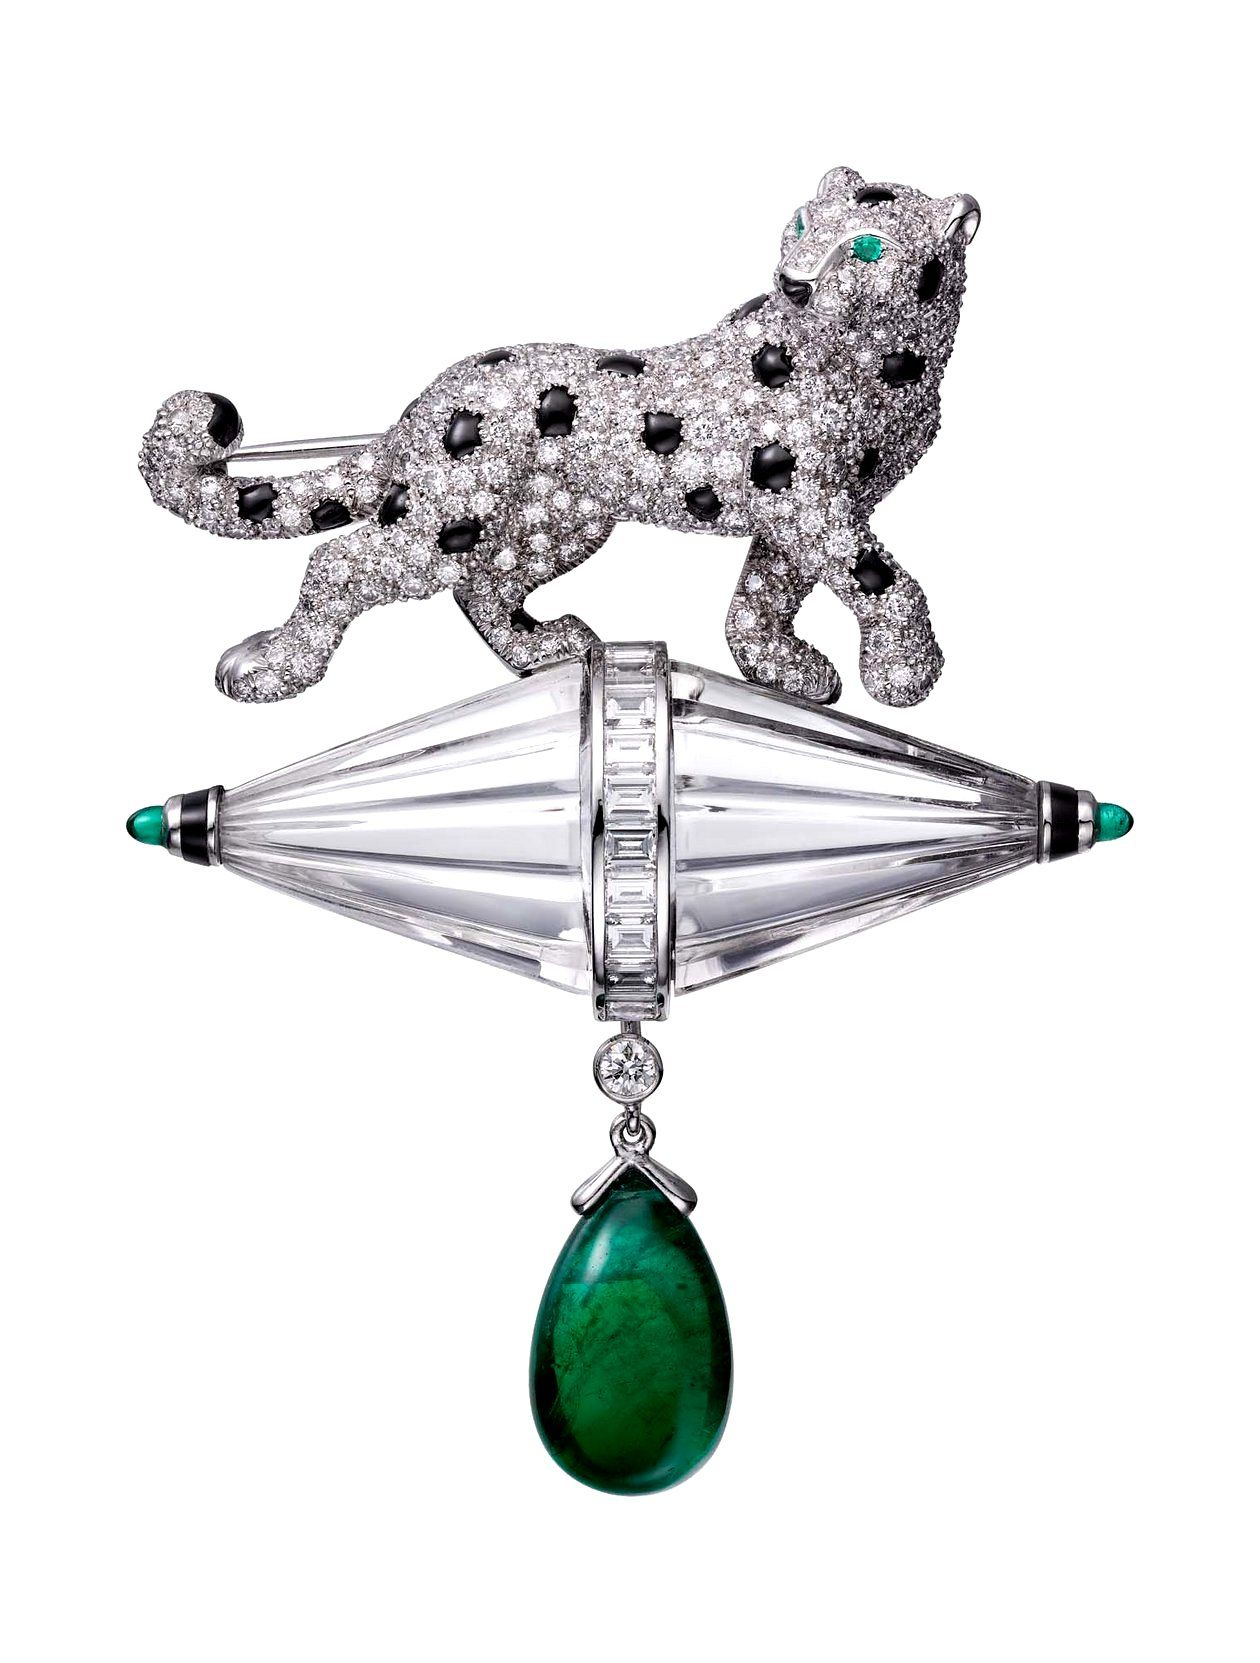 by and csk onyx p details jewelry emerald lot panther cartier a lotfinder diamond brooch